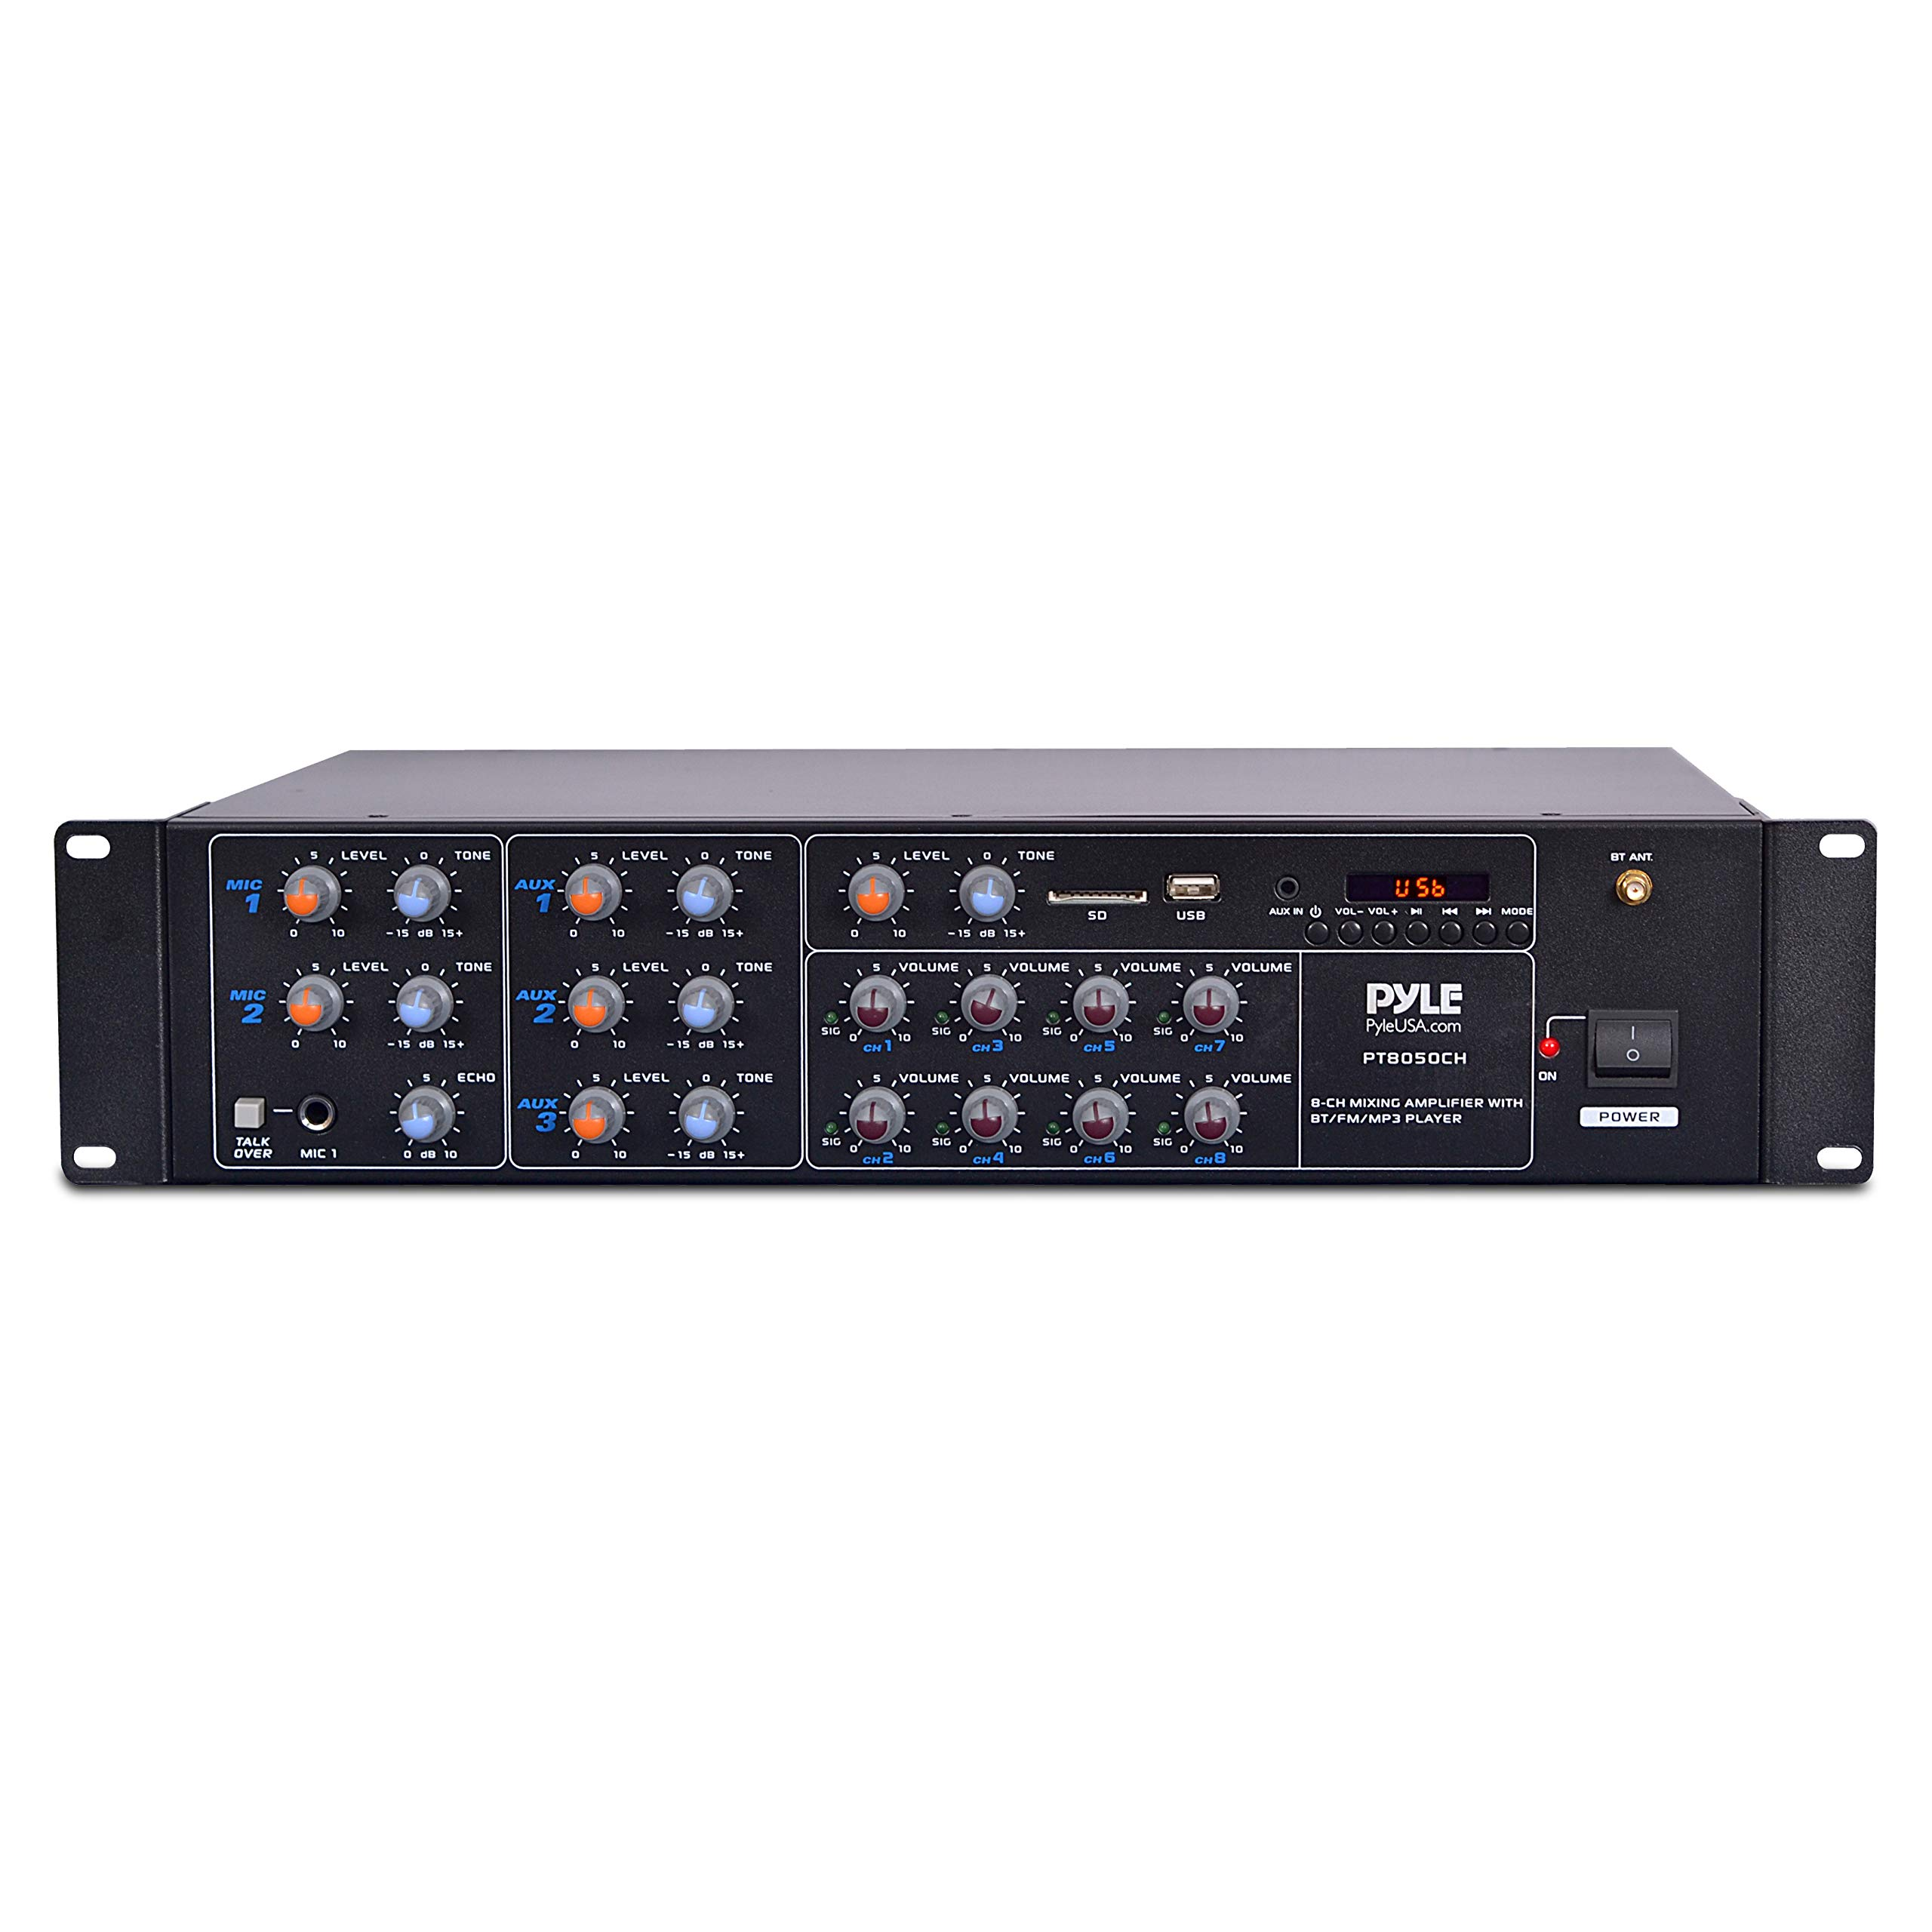 8 Outlet Power Sequencer Conditioner - 2200W Rack Mount Pro Audio Digital Power Supply Controller Regulator w/ Voltage Readout, Surge Protector, For Home Theater, Stage / Studio Use - Pyle PS1200 by Pyle